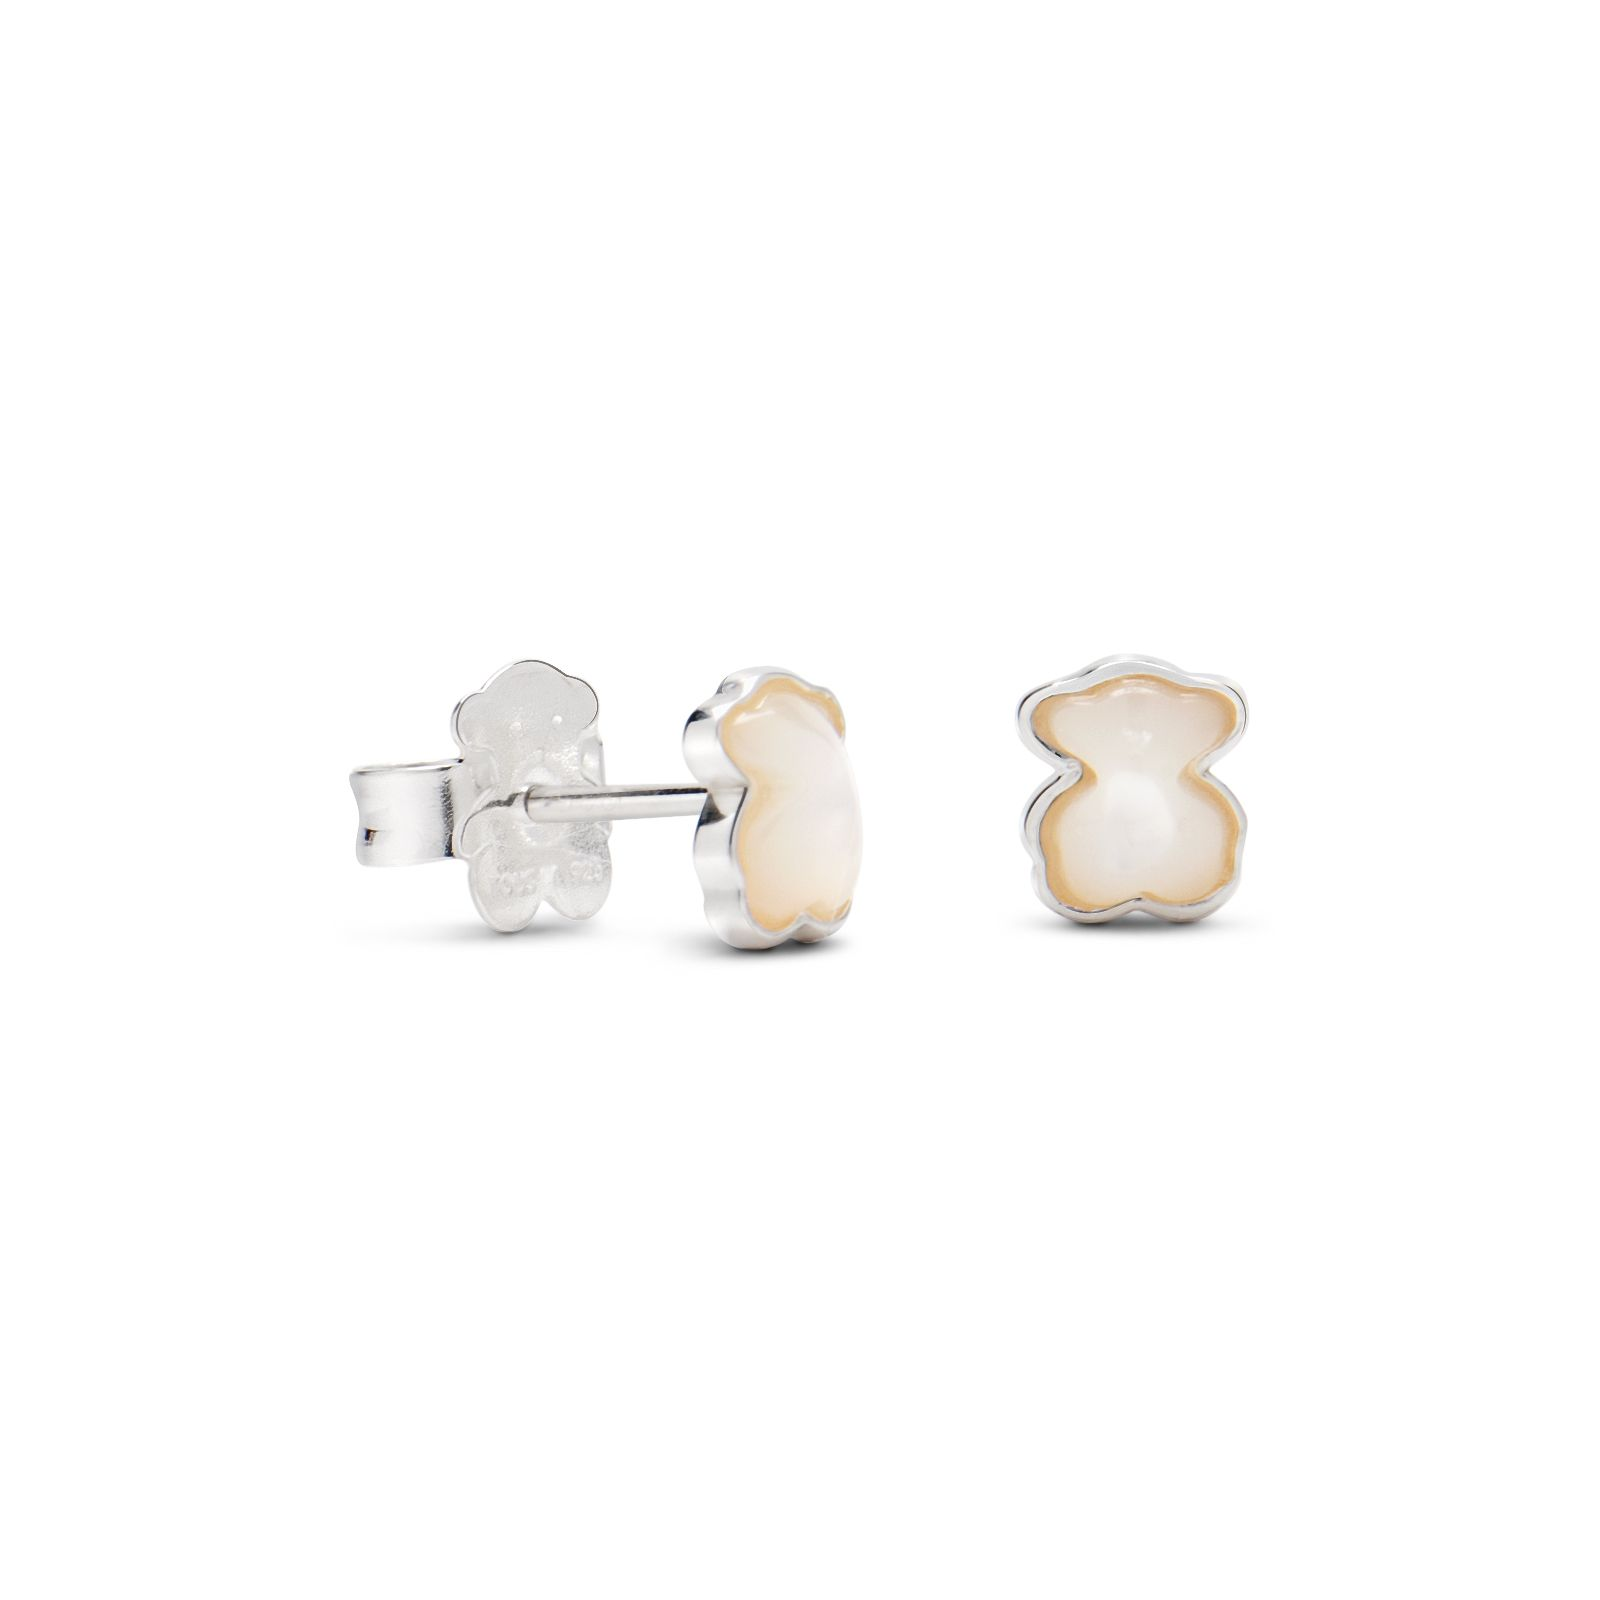 b11ab8cb8979 Sterling silver and mother of pearl TOUS Color earrings. 7mm. - 1 4